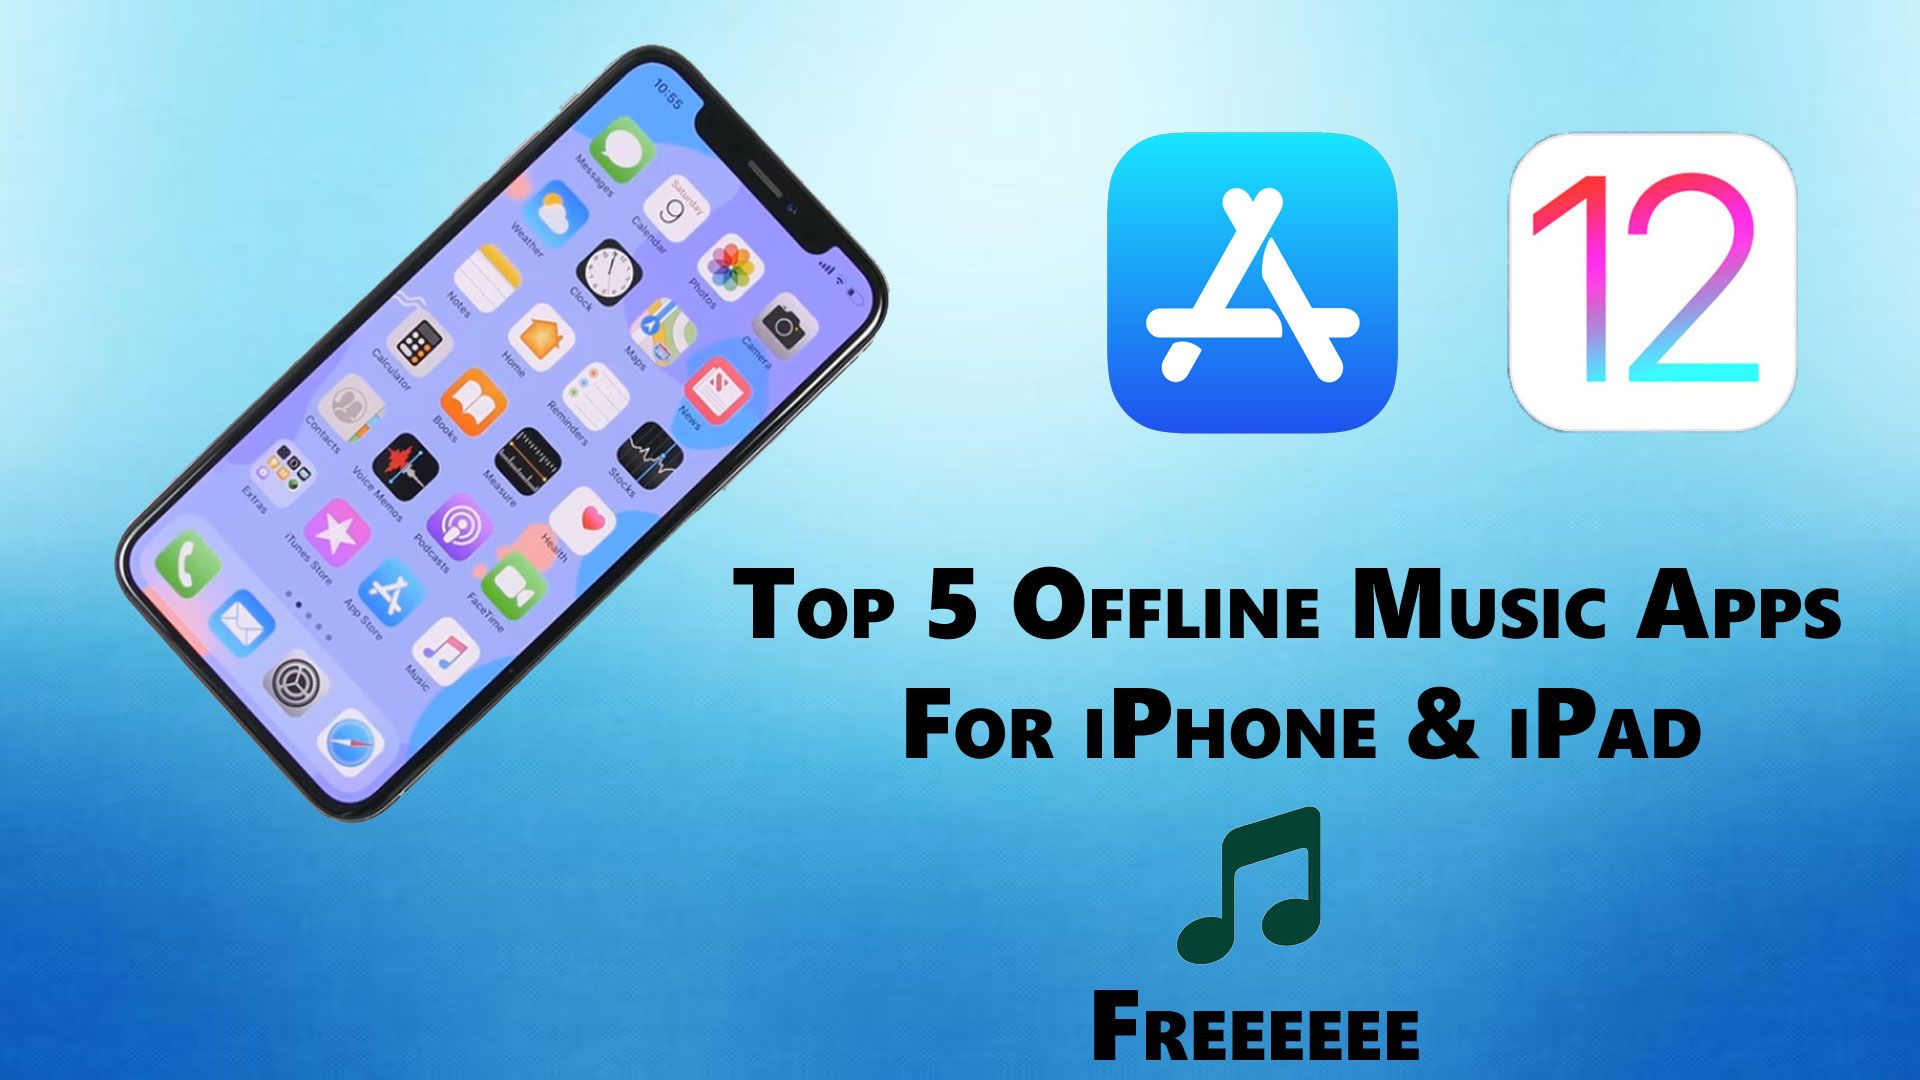 Top 5 offline music apps for iPhone & iPad Download them Now